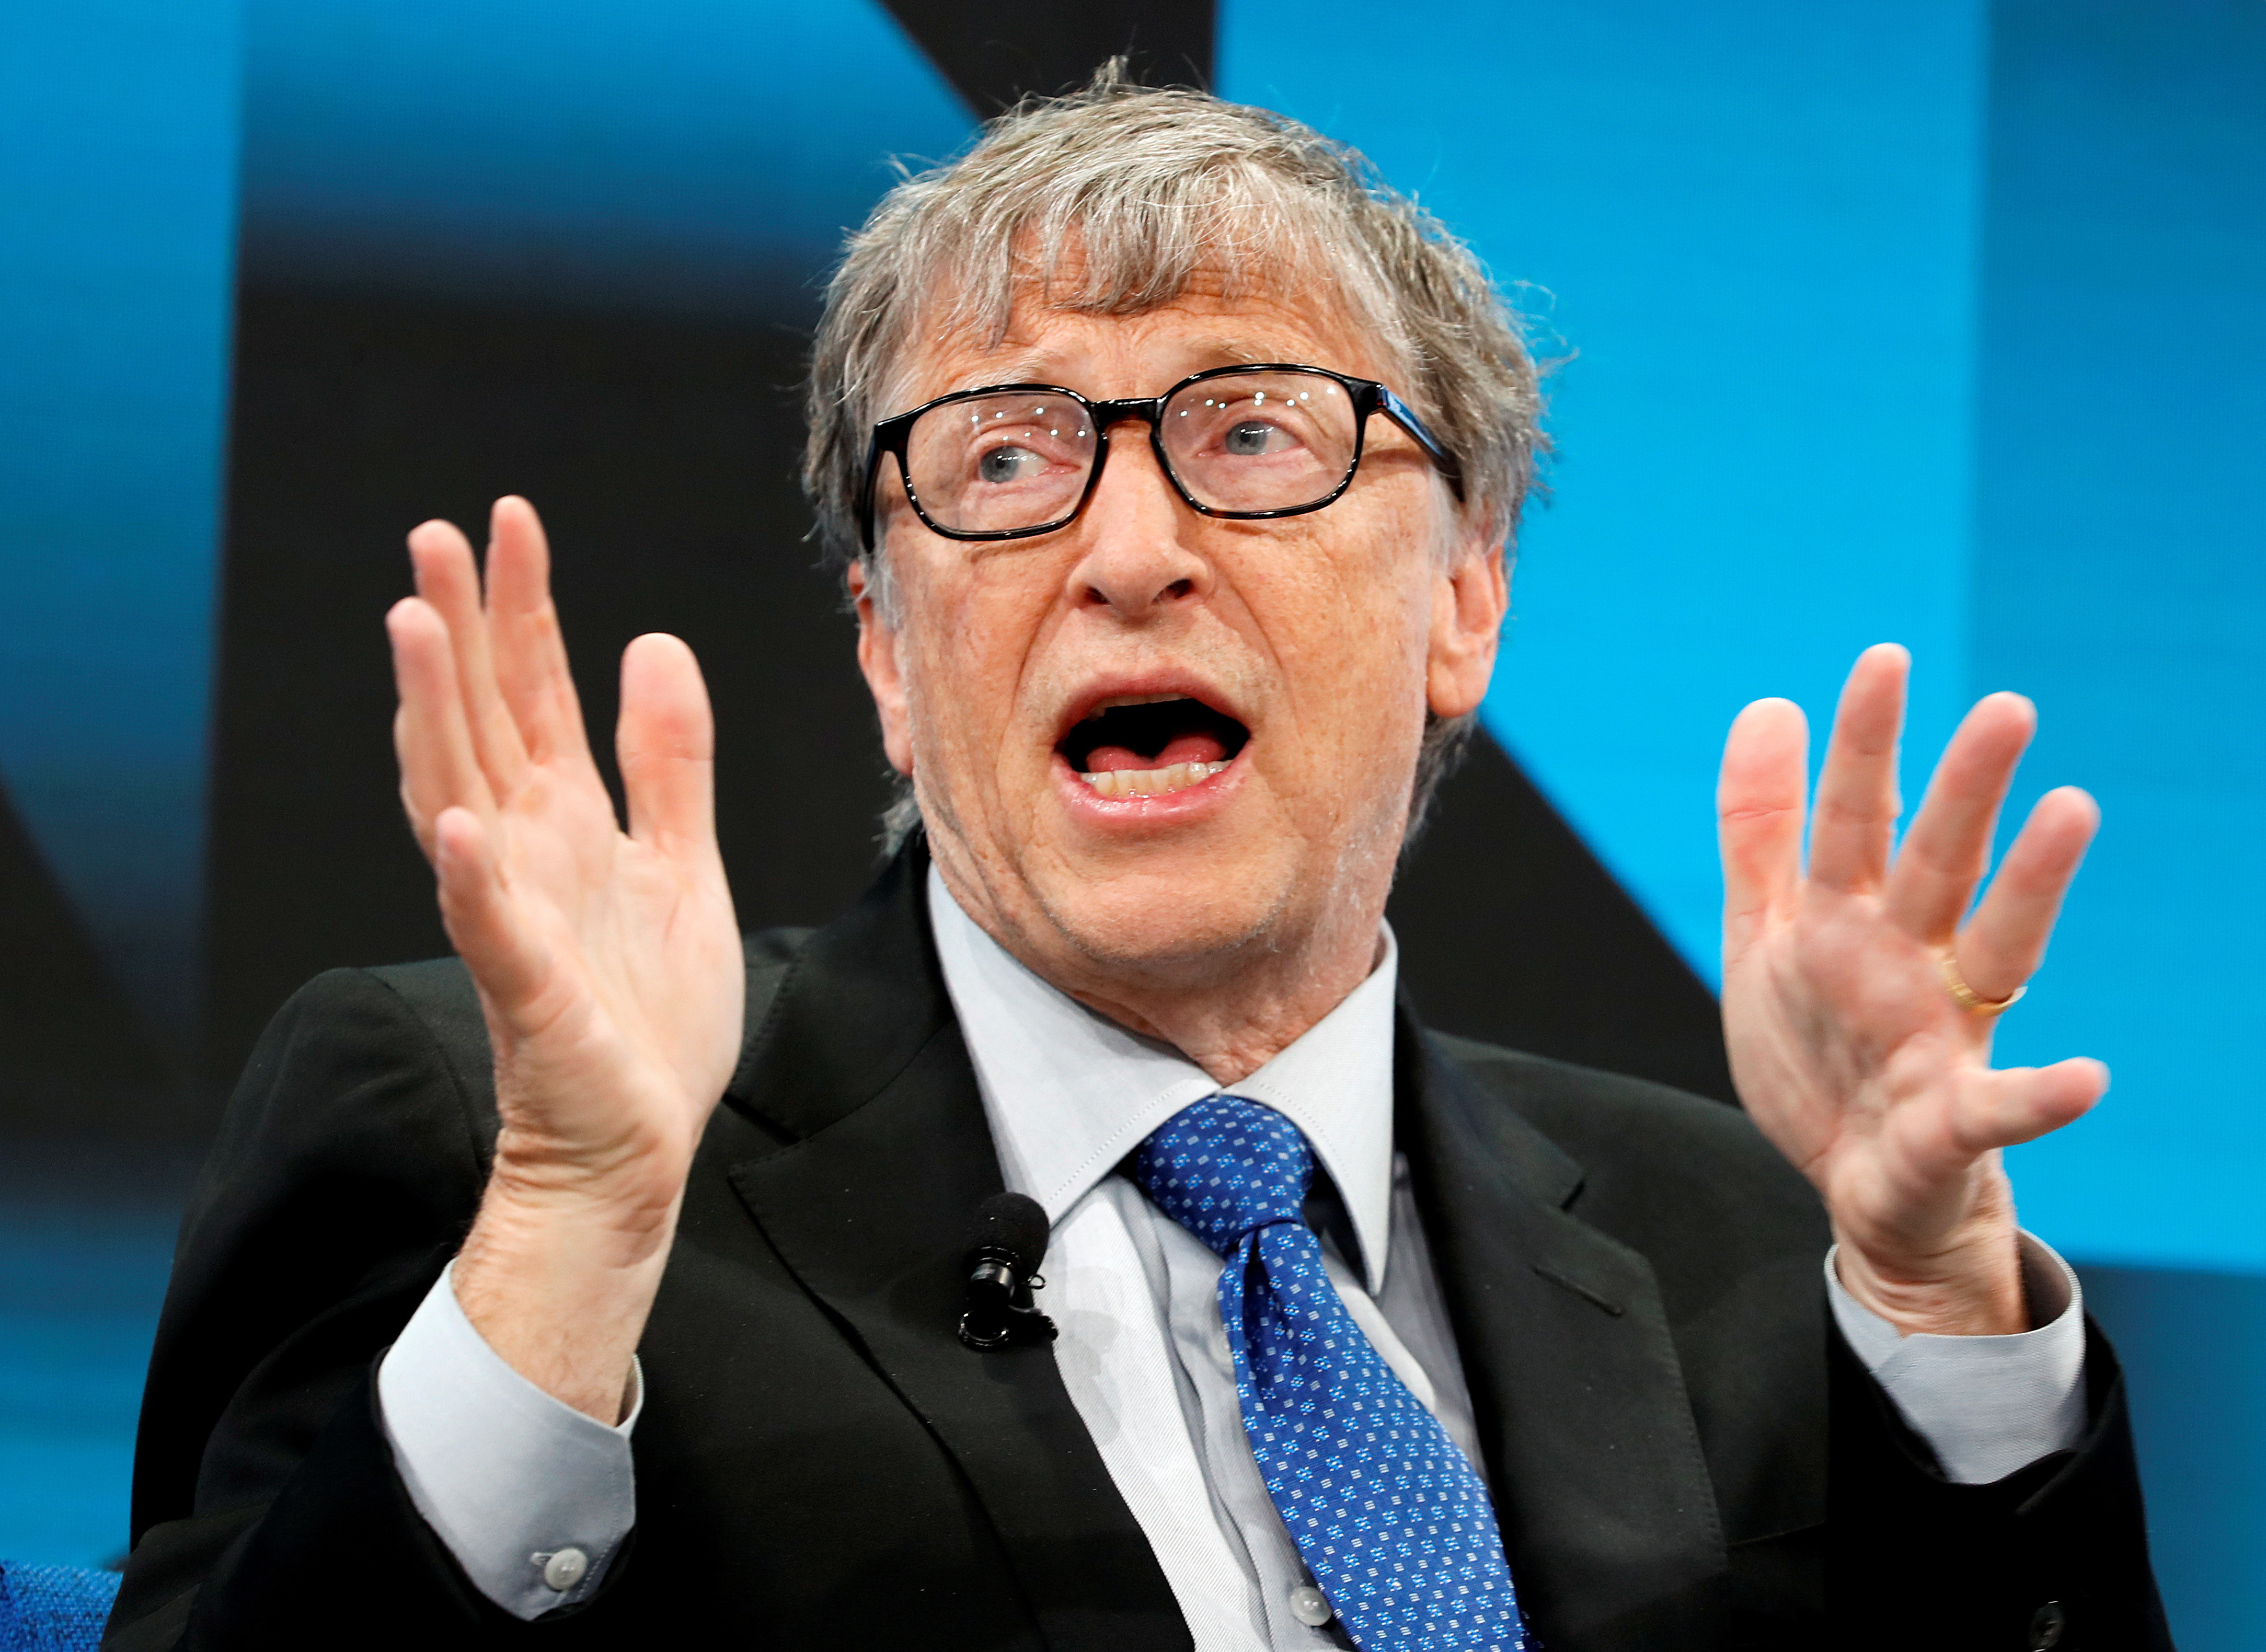 Bill Gates, Co-Chair of Bill & Melinda Gates Foundation, gestures as he speaks during the World Economic Forum (WEF) annual meeting in Davos, Switzerland, January 22, 2019. REUTERS/Arnd Wiegmann - RC145FC77E10